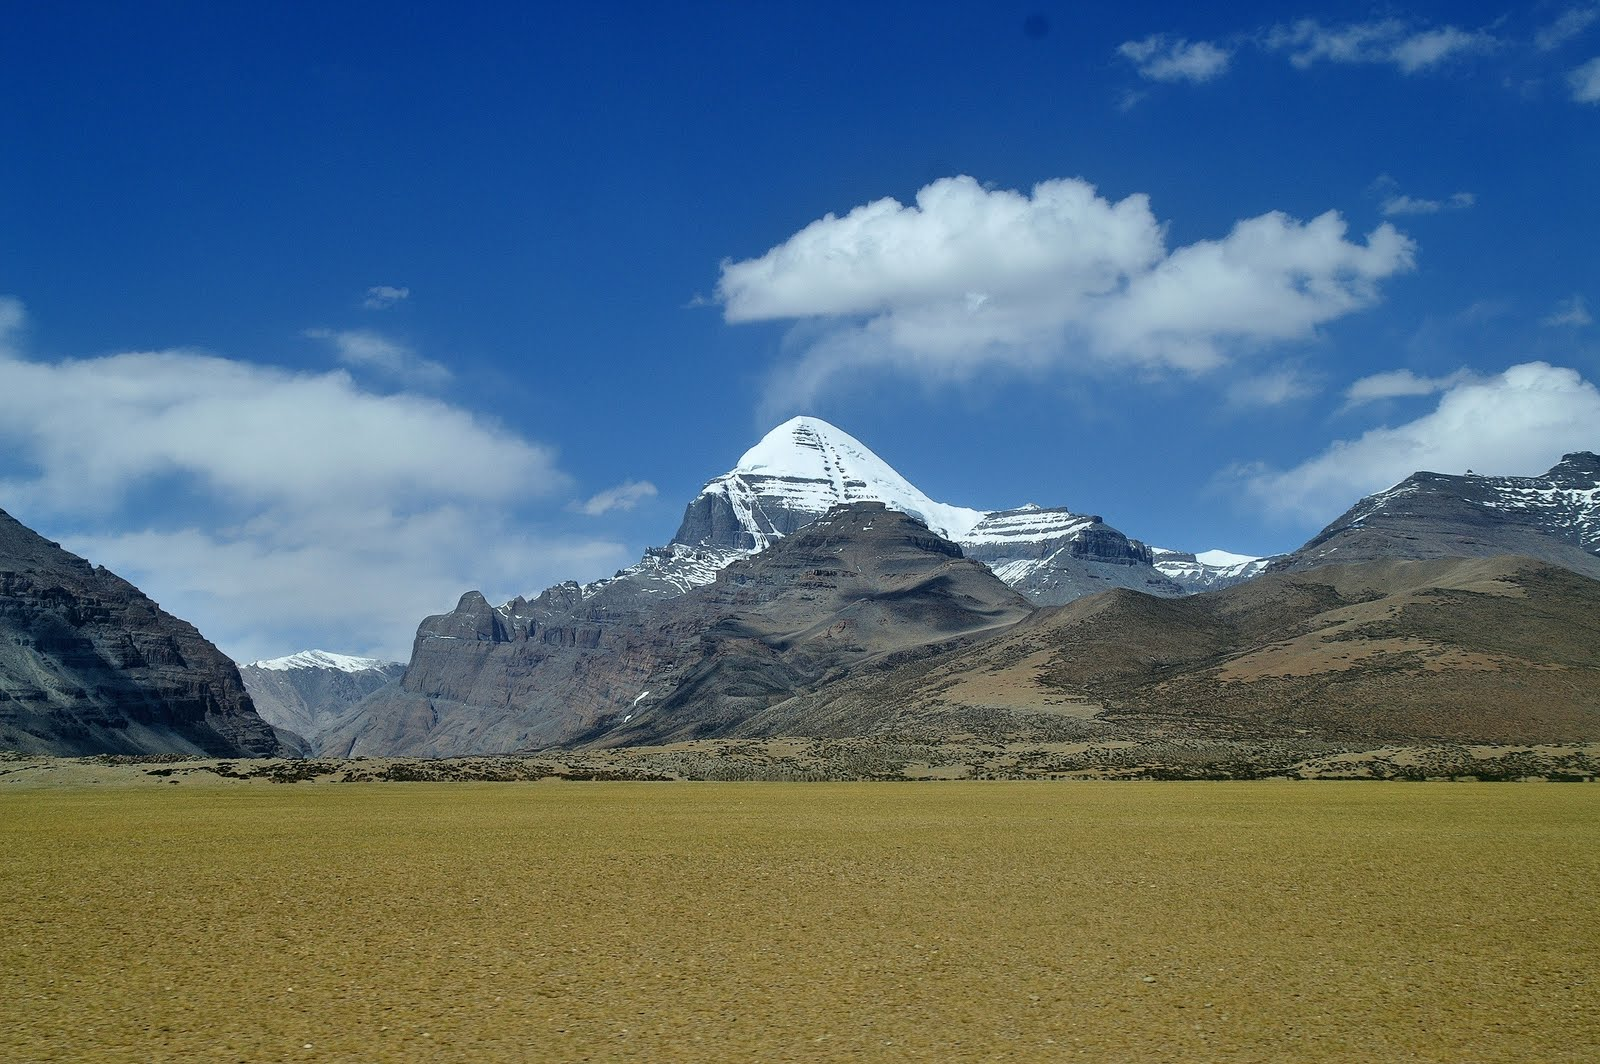 Kailash Mansarovar via Lhasa (By Land)